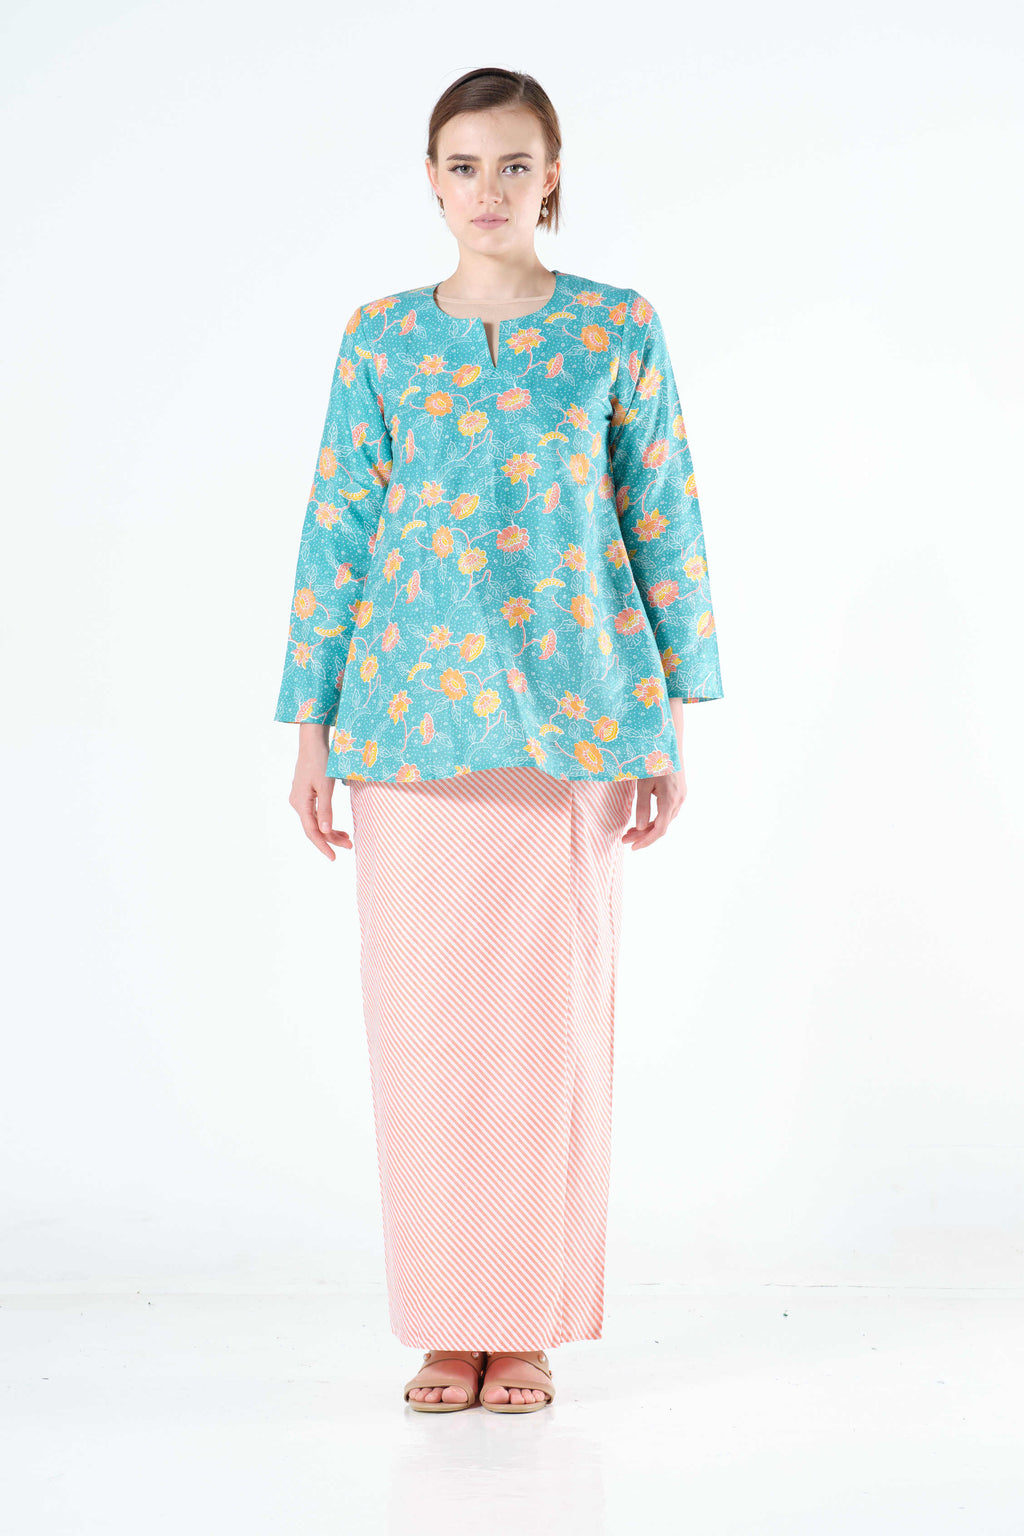 Sirin Sarung in Peach